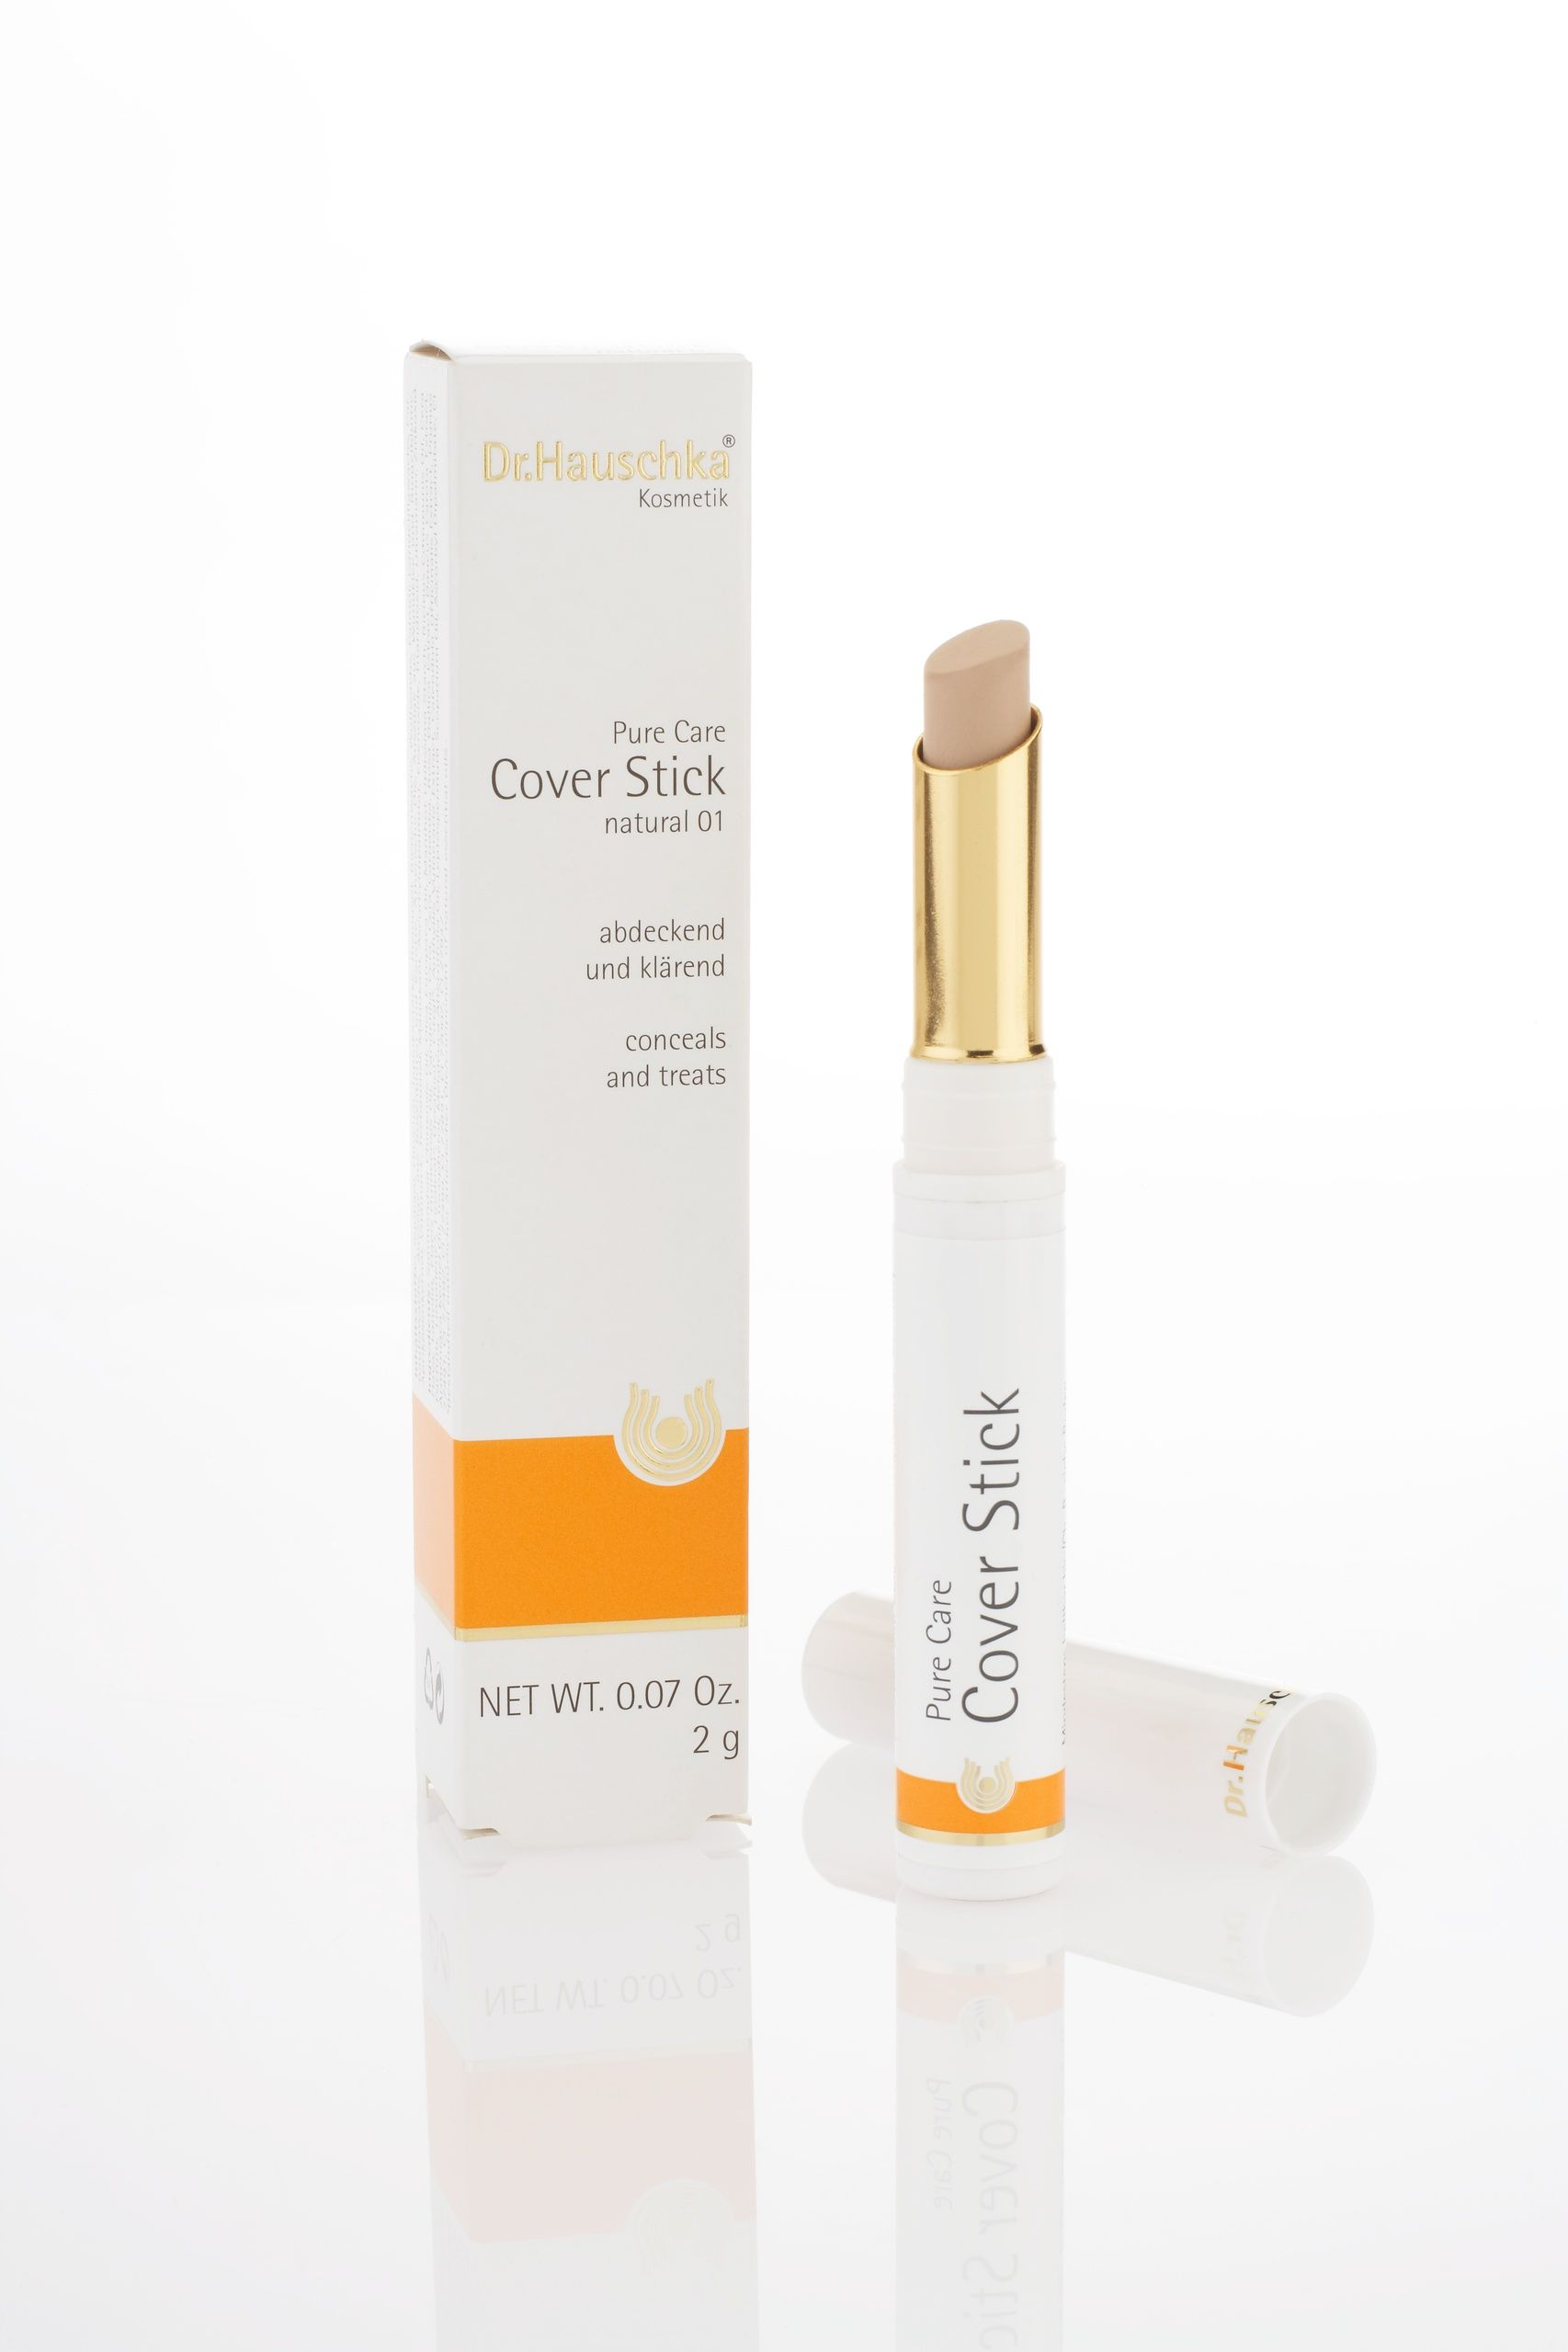 Pure Care Cover Stick conceal and heal Pure products